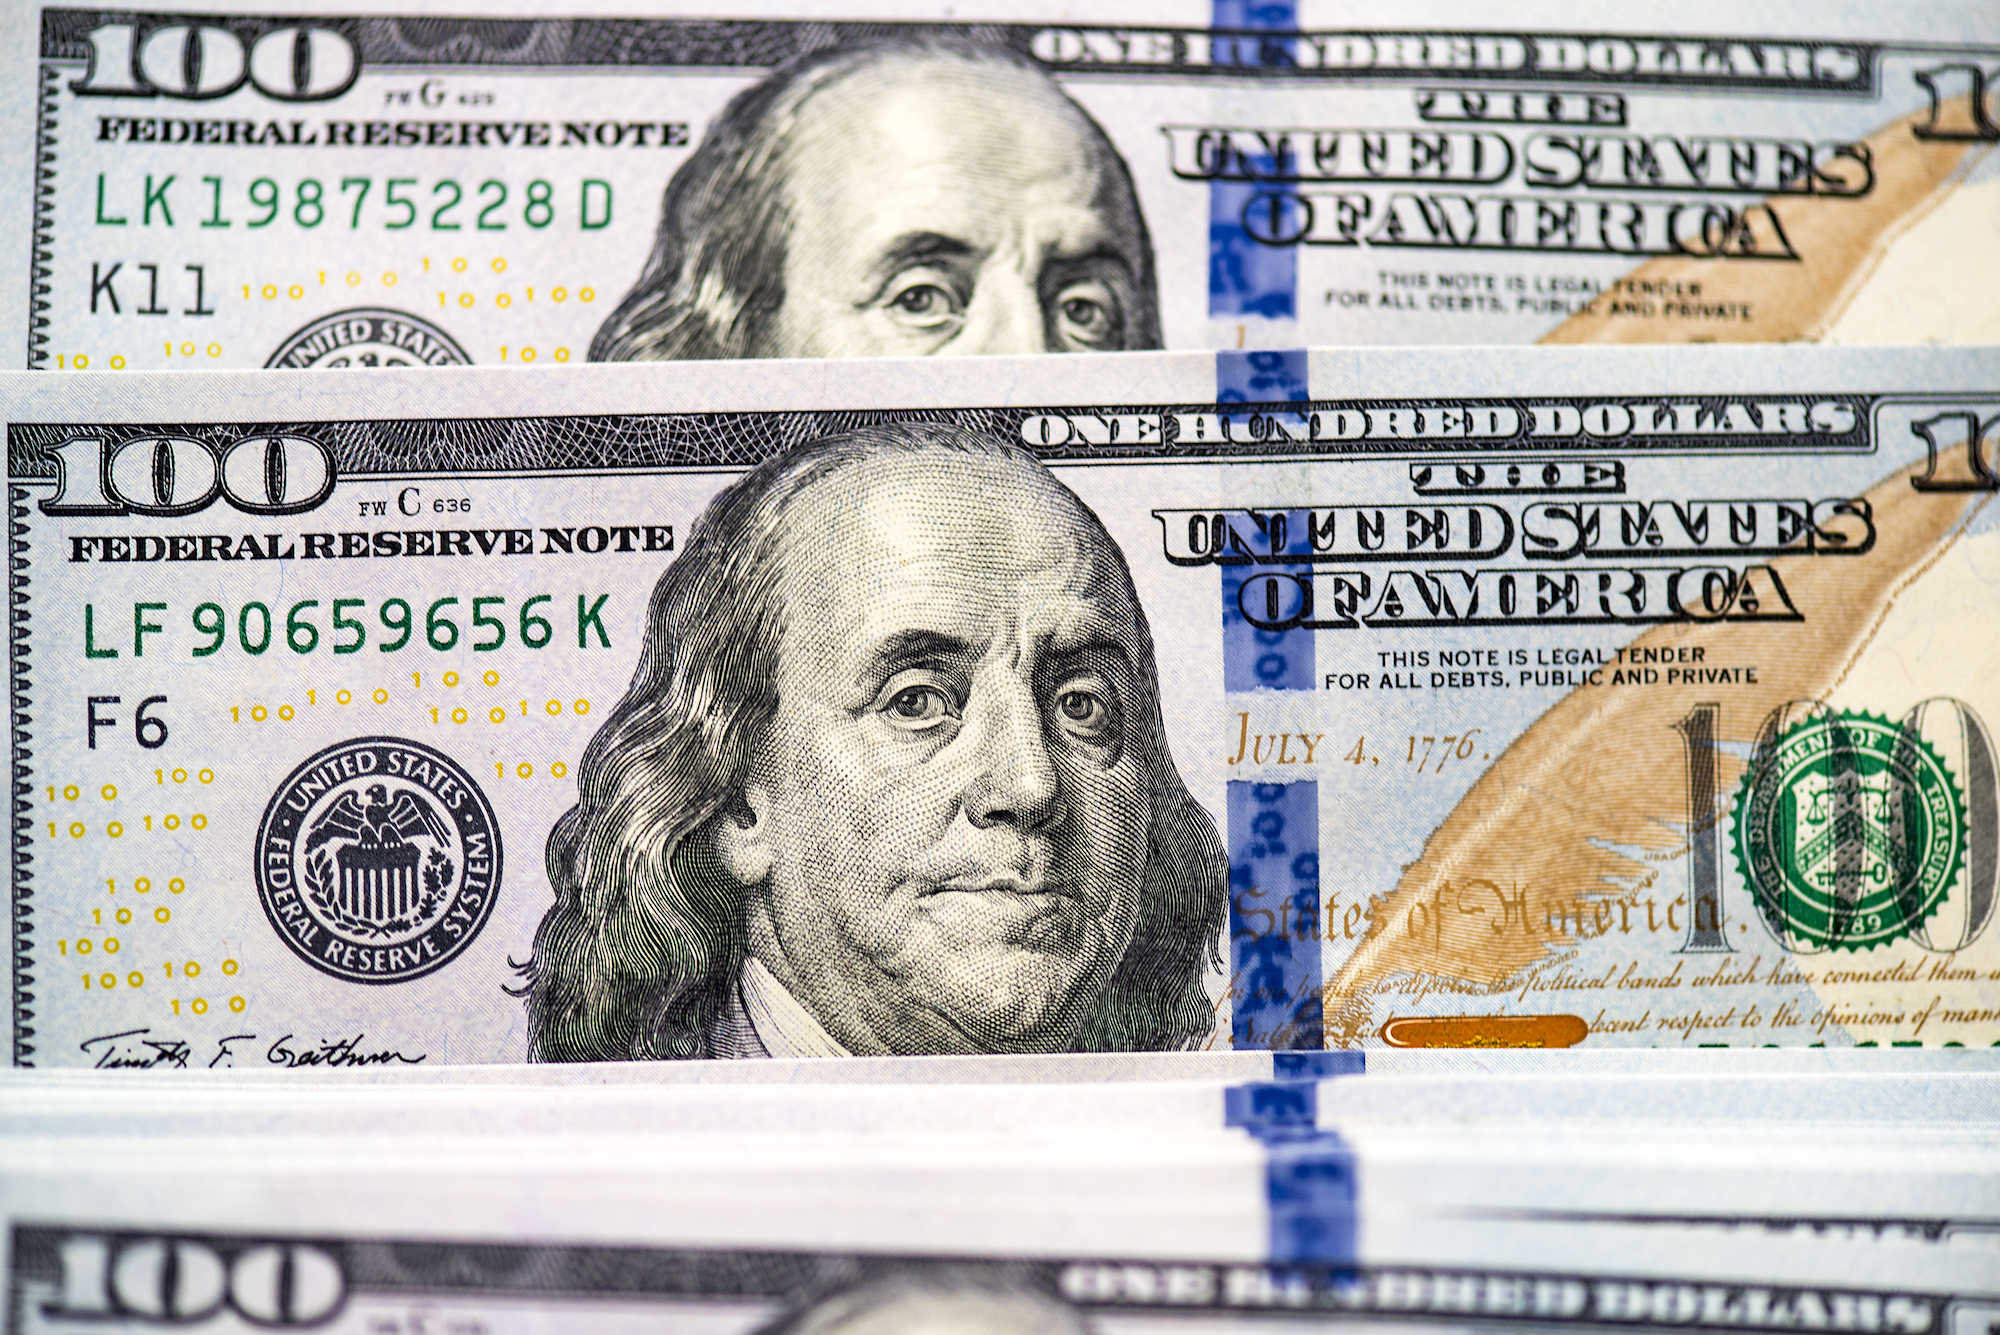 An image of multiple one hundred dollar bills in US Currency